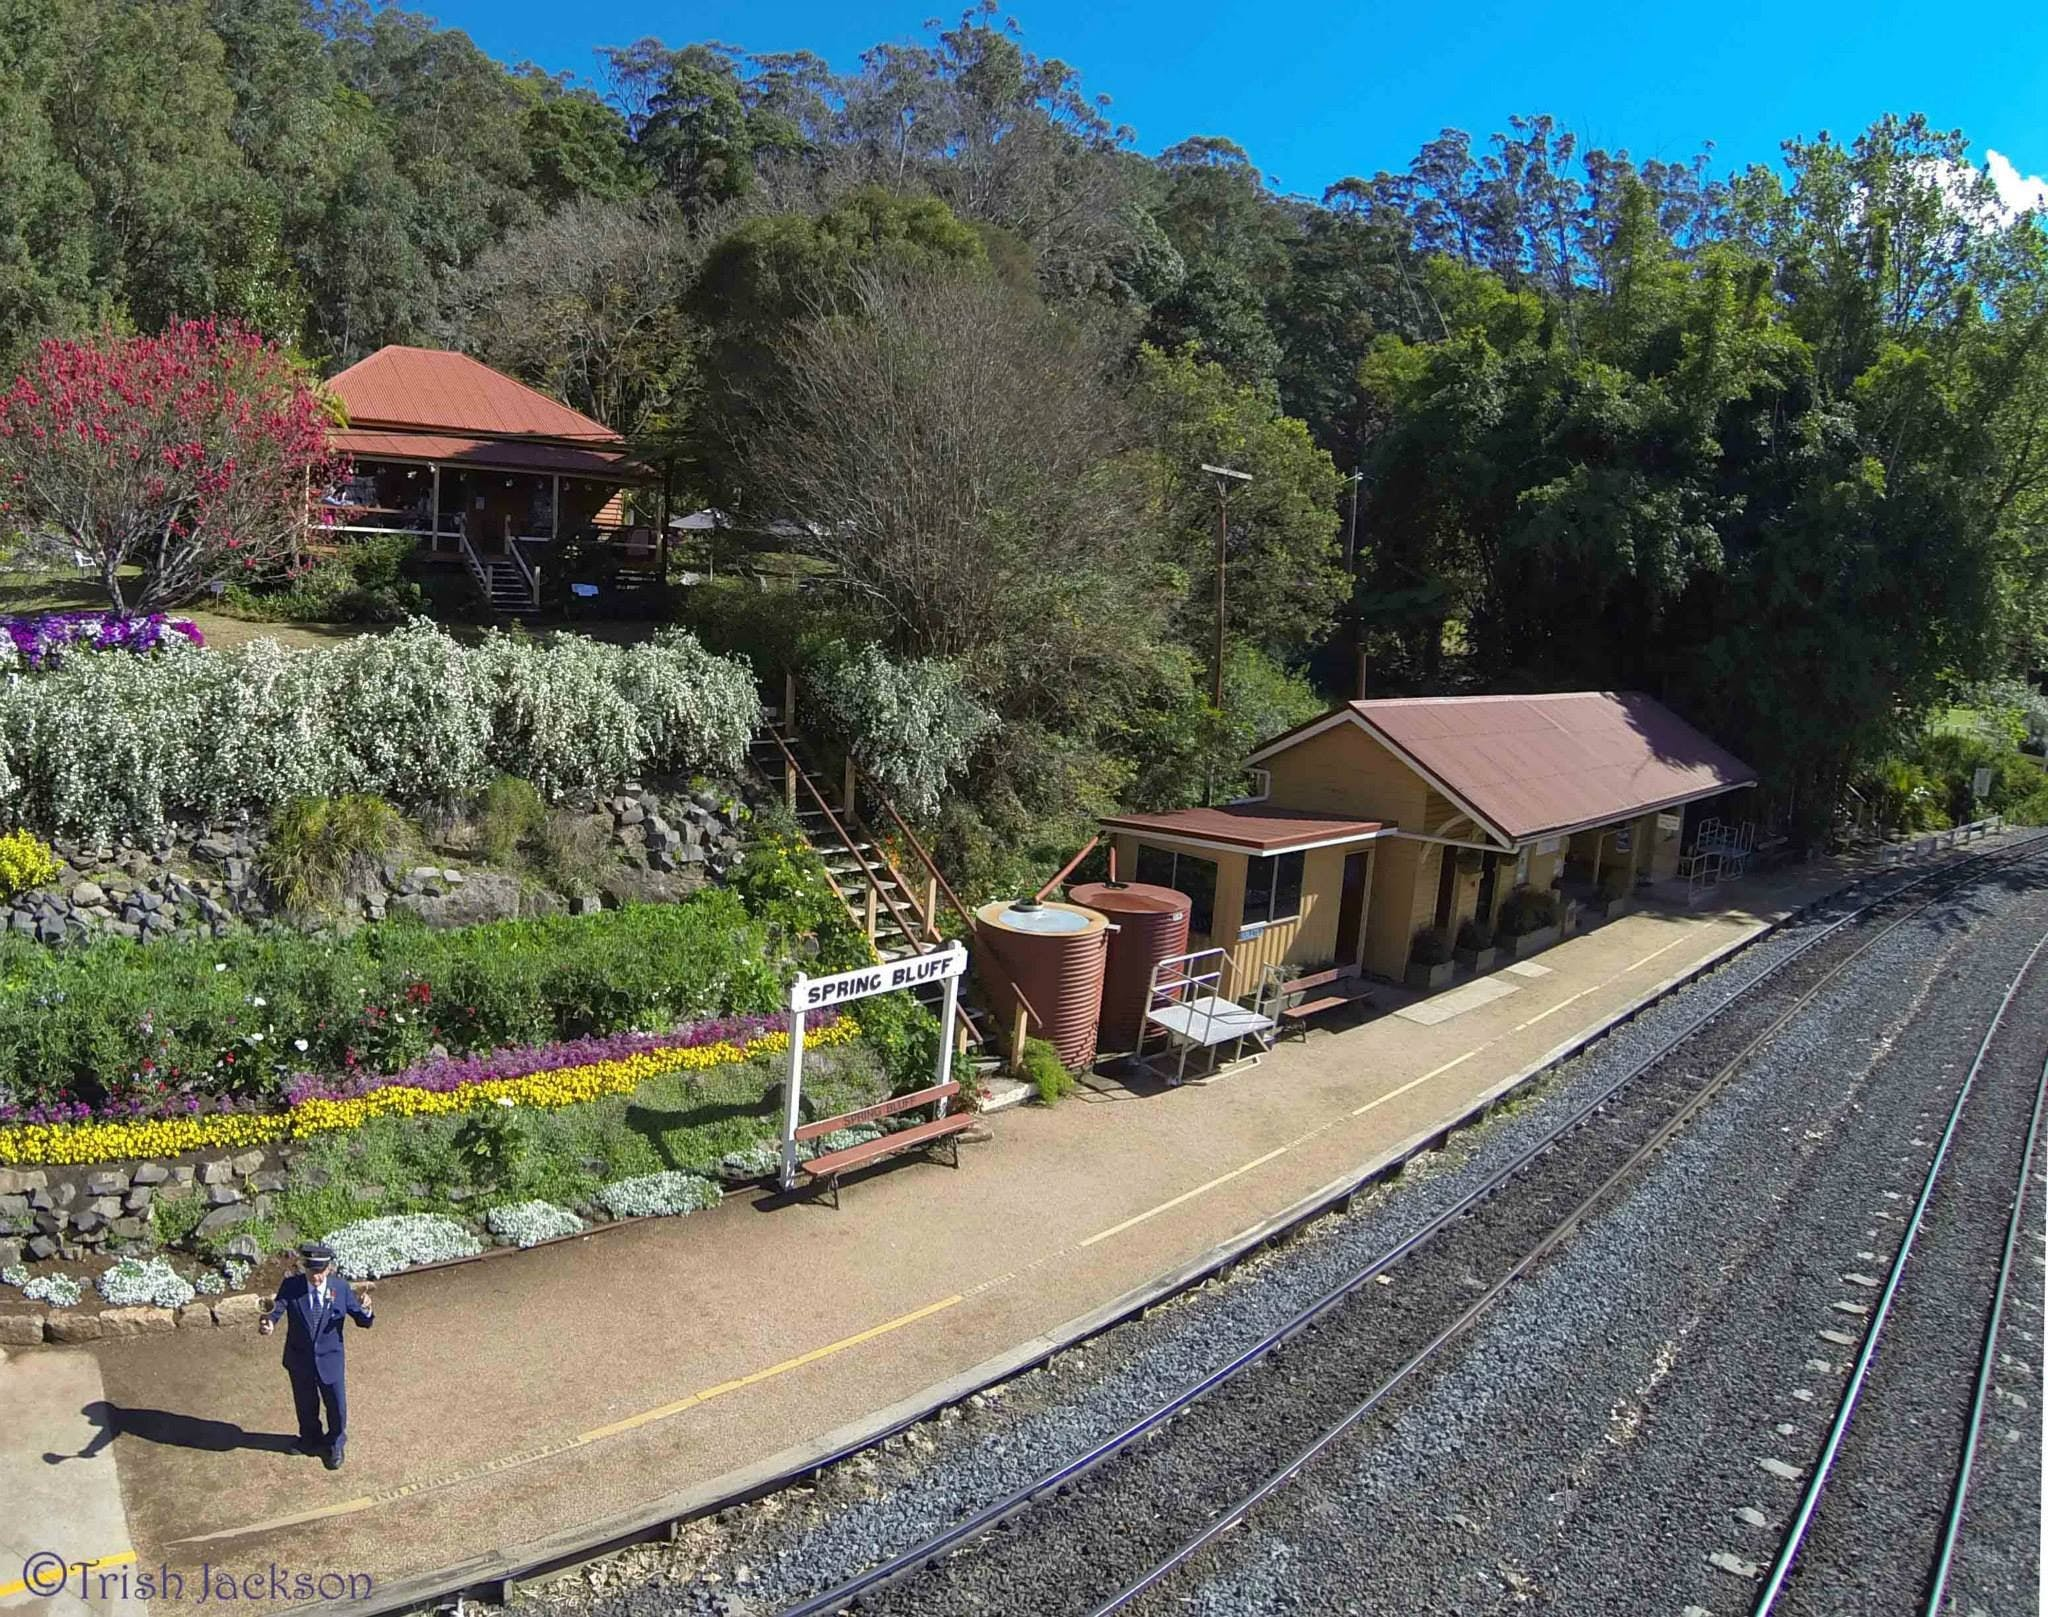 Spring Bluff Railway Station - Attractions